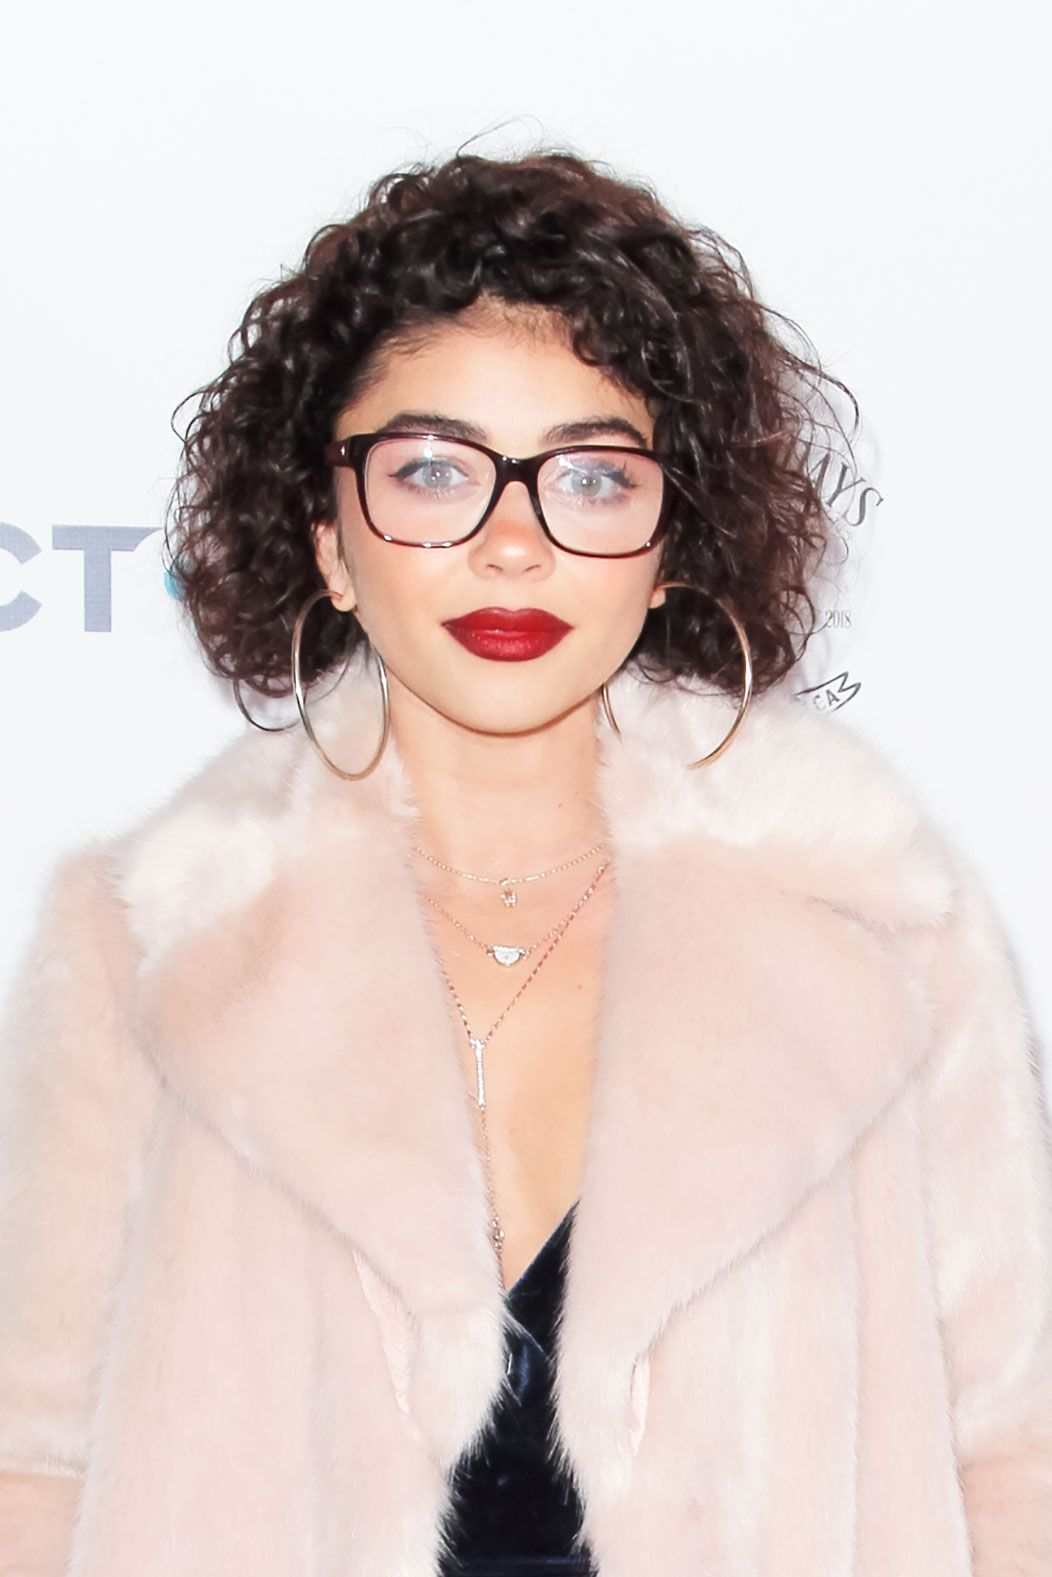 Sarah Hyland Claps Back Her Gorgeous Curly Hairstyle Is Not A Perm Sarah Hyland Hair Curly Hair Styles Curly Hair Styles Naturally